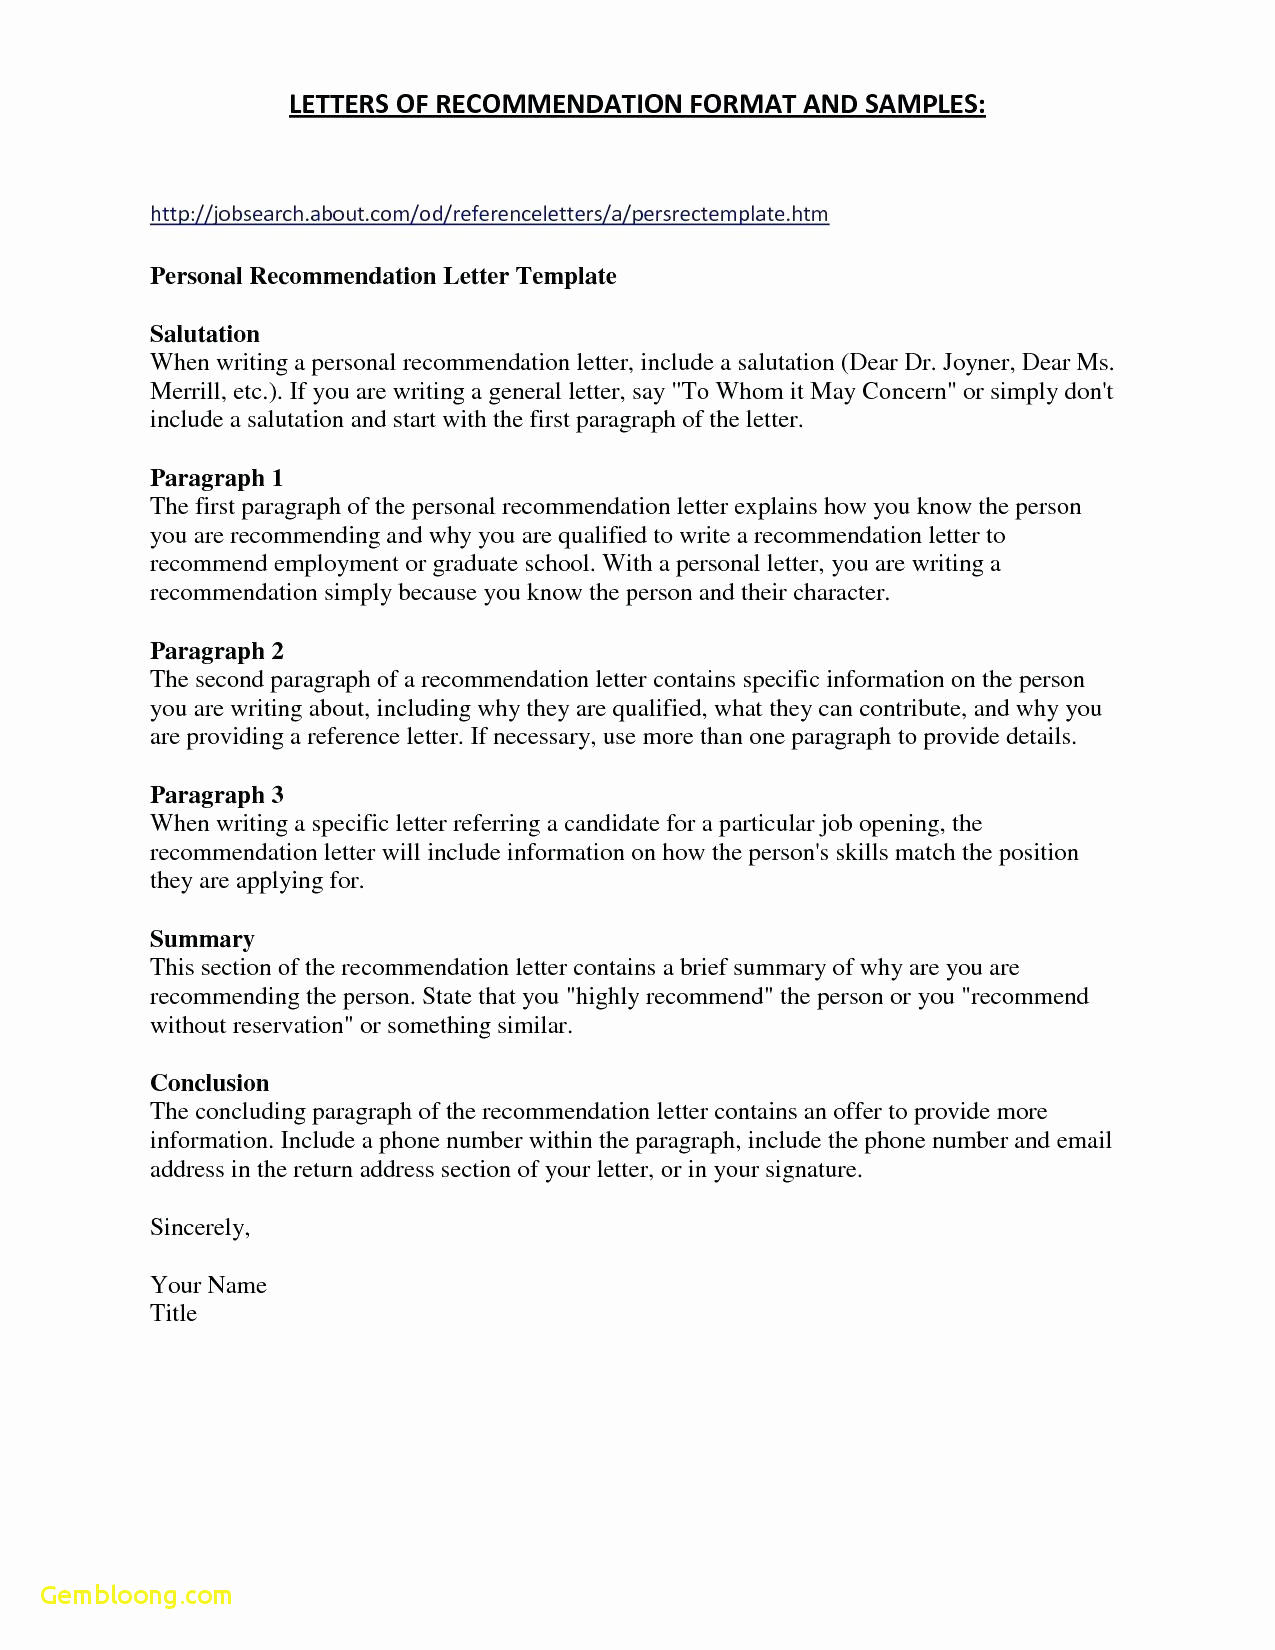 Reference Letter Template - Personal Re Mendation Letter for Employment Lovely References for